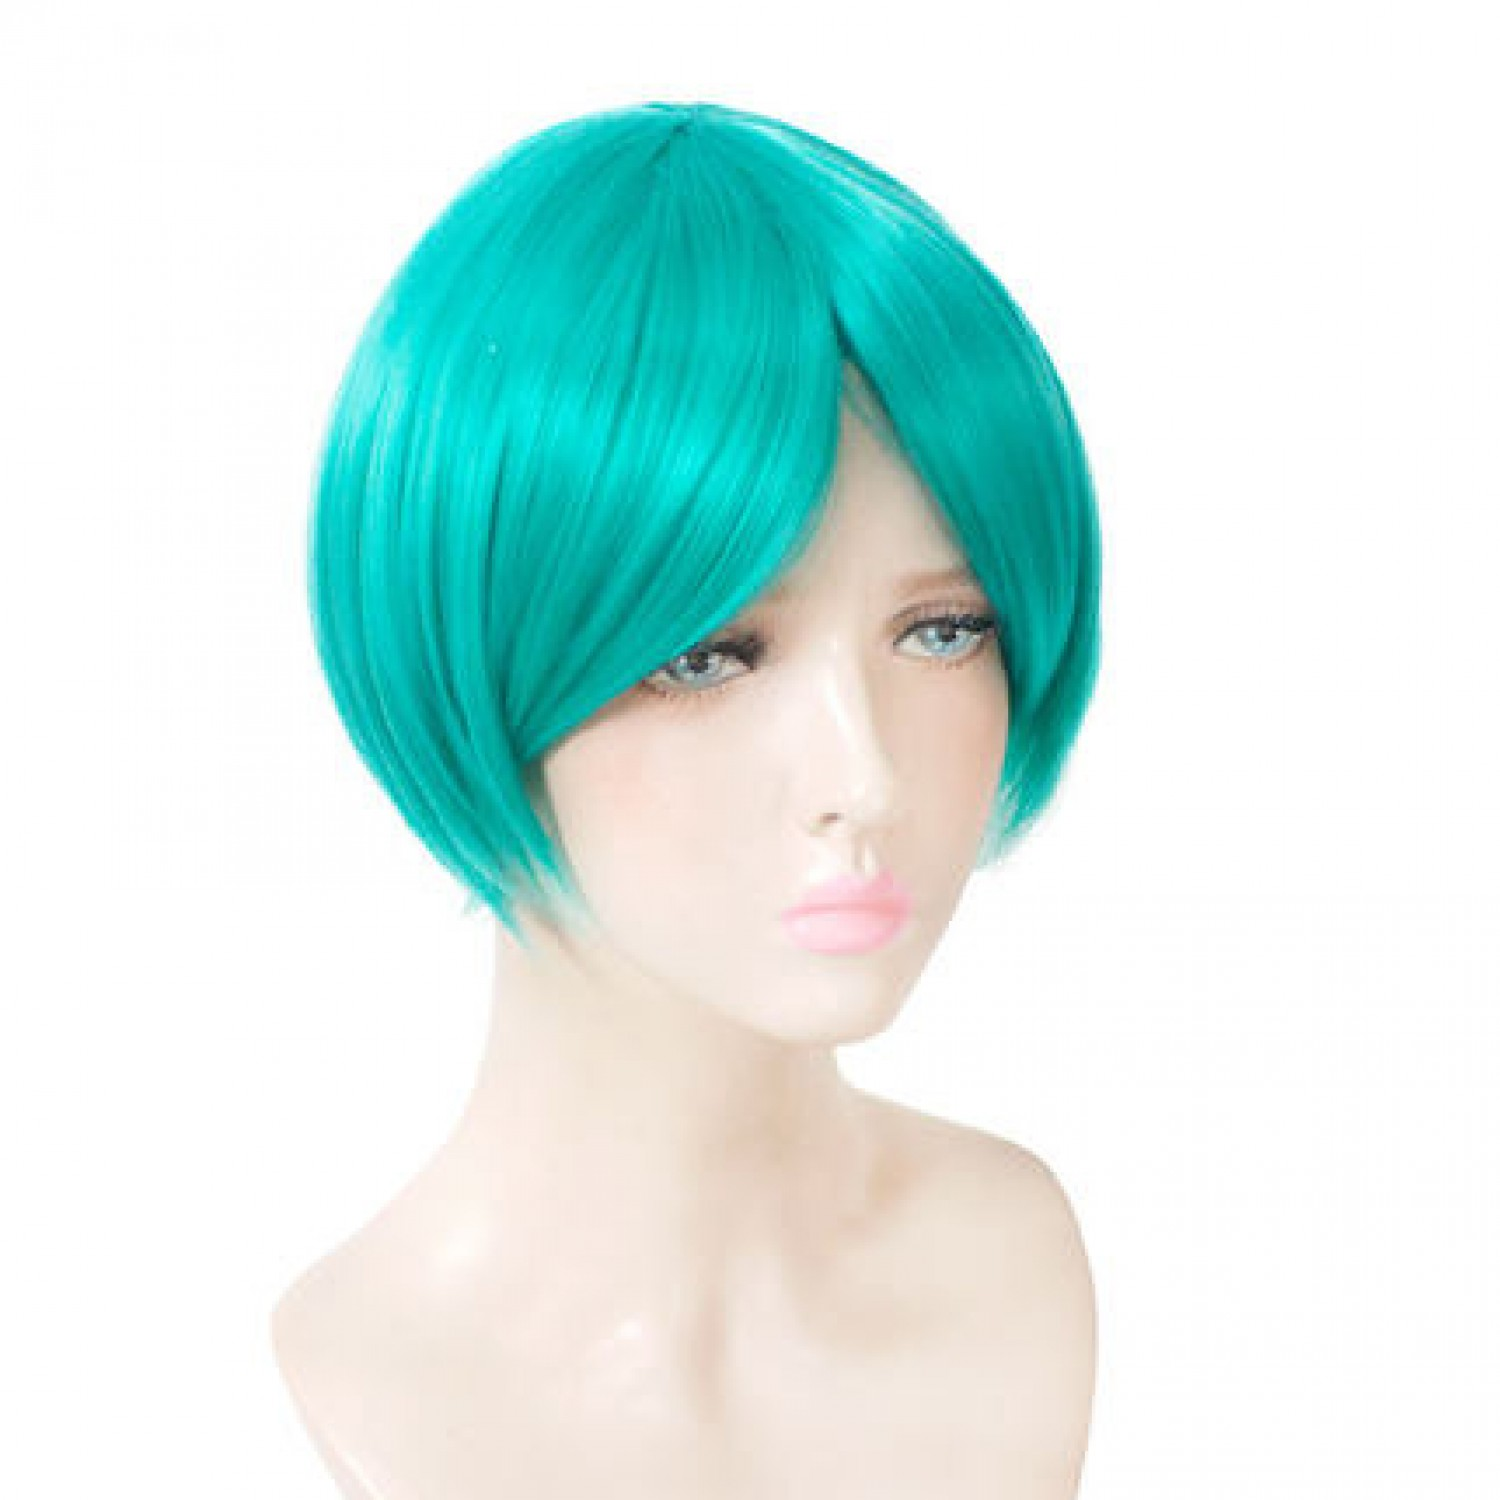 Land of the Lustrous Phosphophyllite Light Blue Short Hair Cosplay Wig